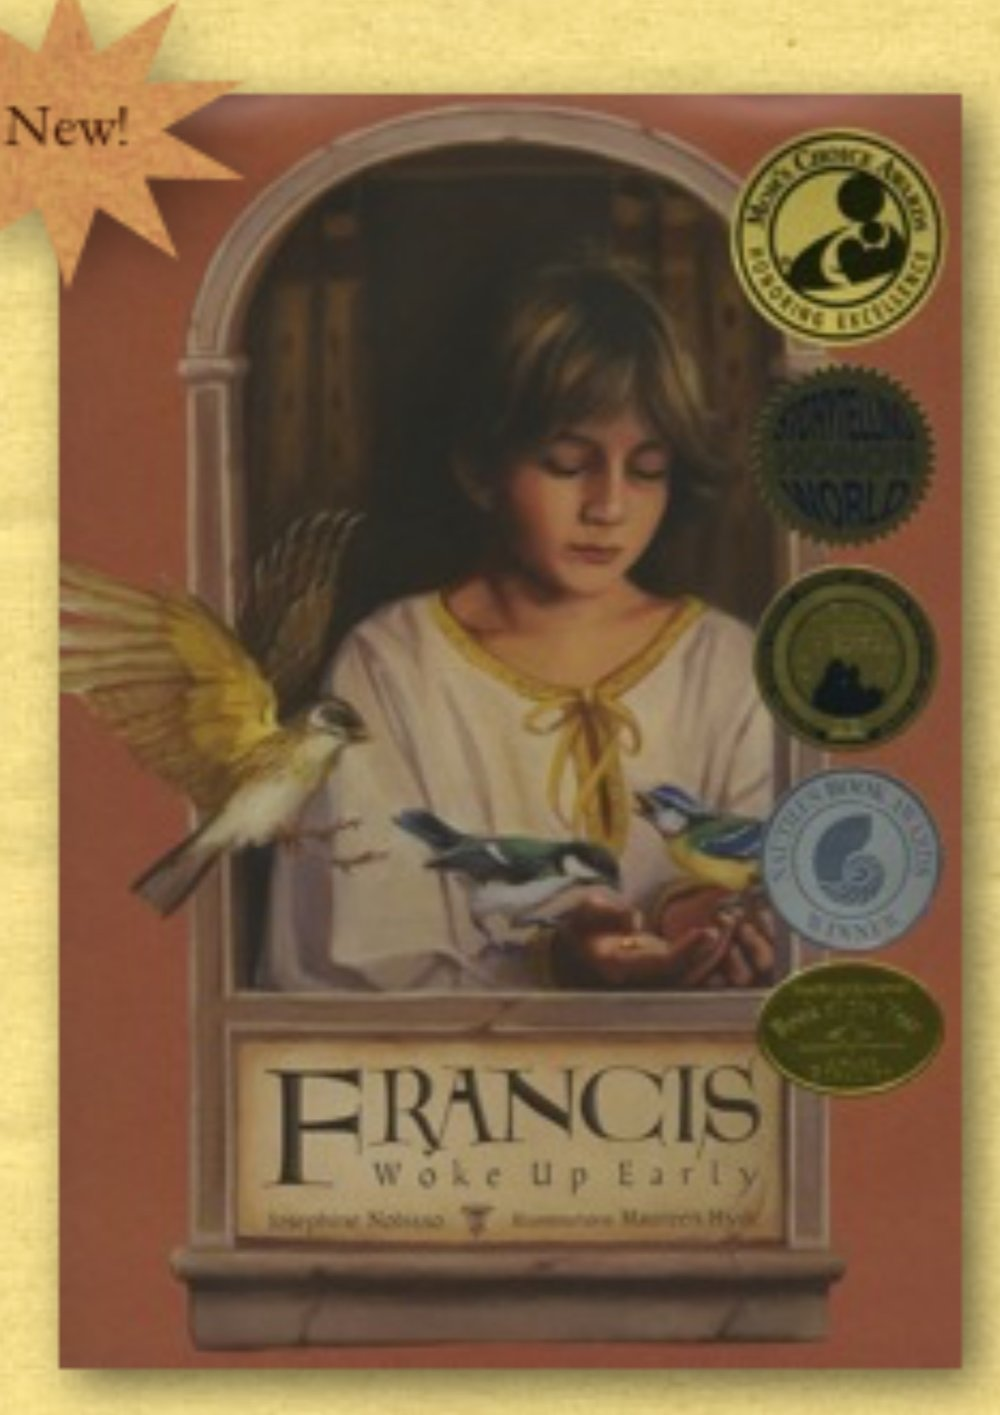 Francis book cover.jpg